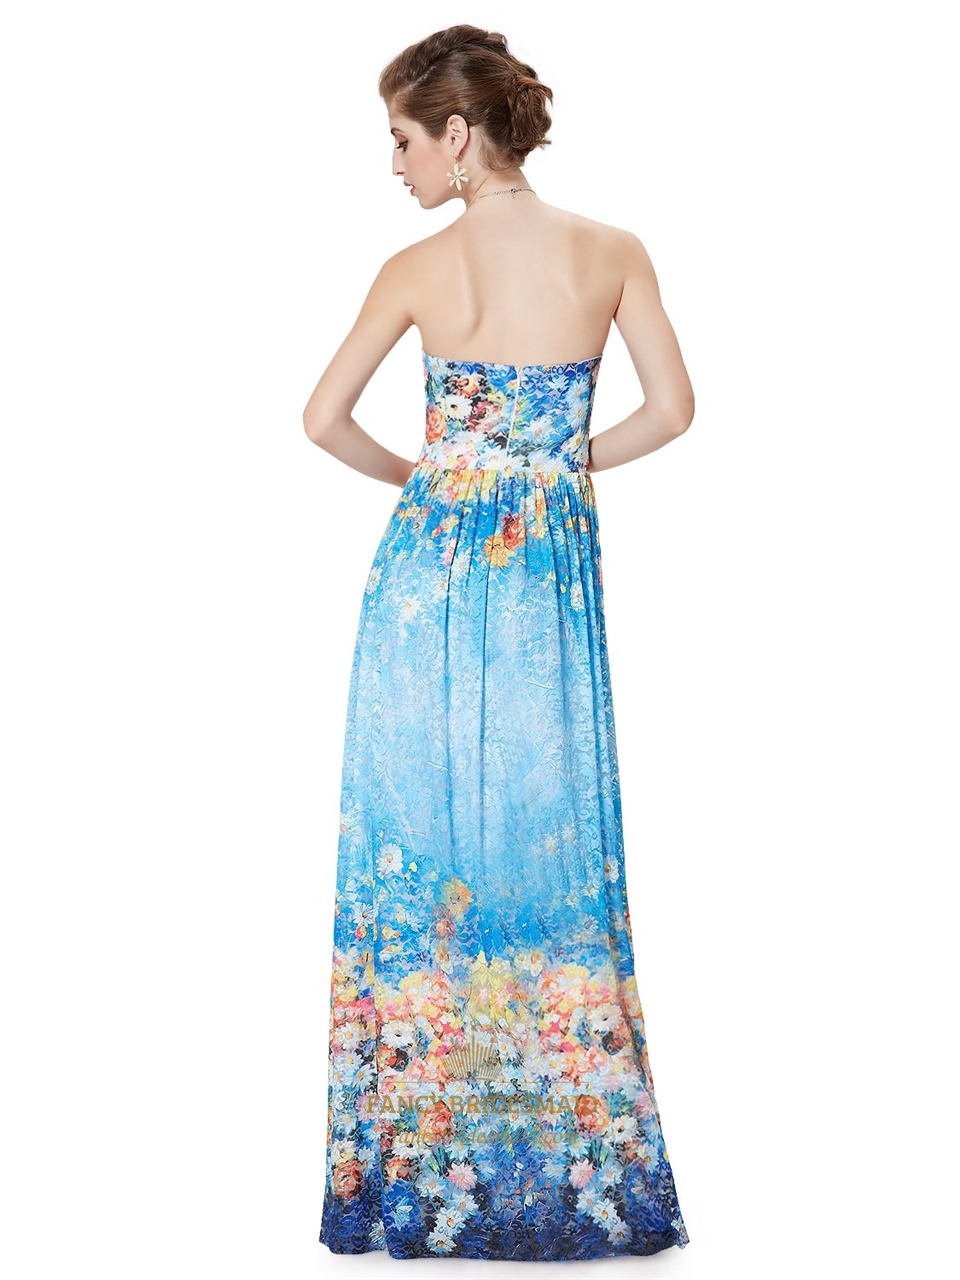 Blue Floral Print Bridesmaid Dresses Strapless Padded